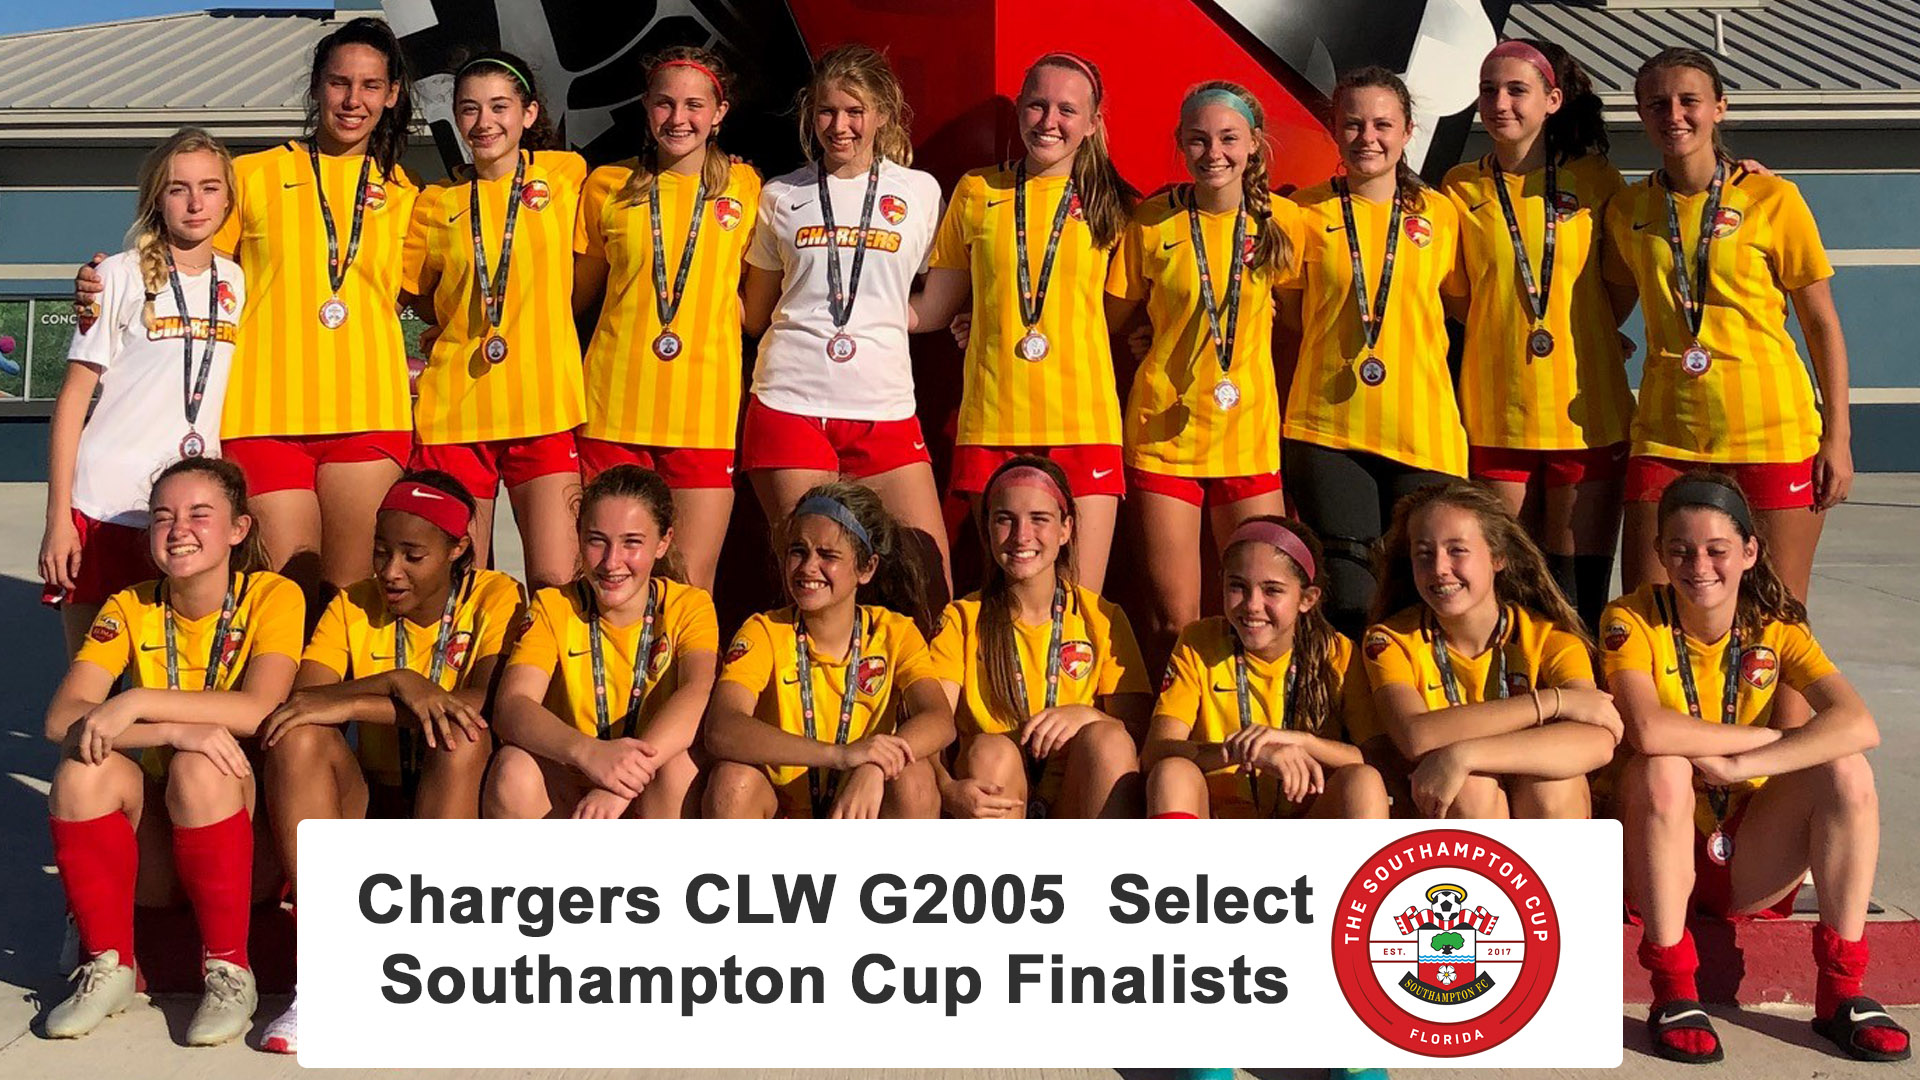 CLW G2005 Southampton Cup Finalists